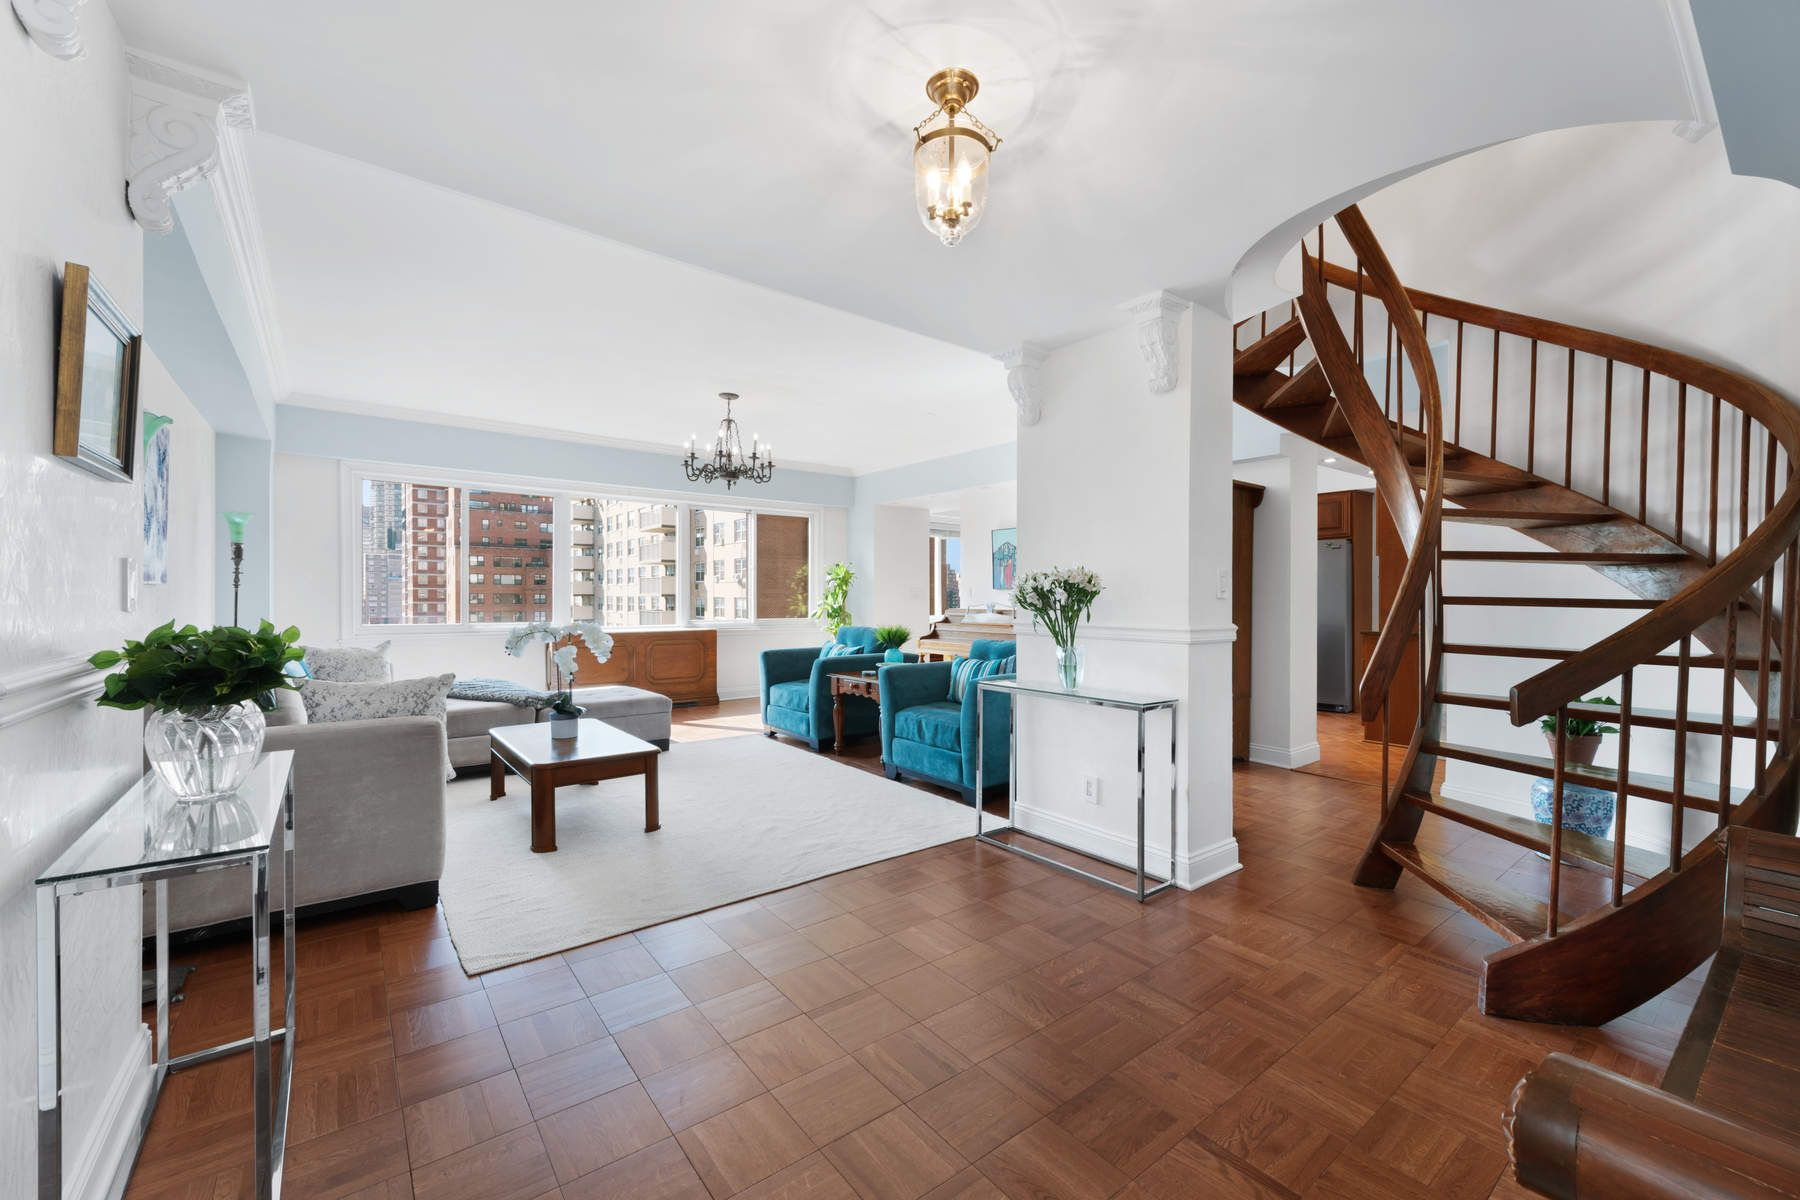 Co-op for Sale at 401 East 86th Street, Apt. 16C/17CD 401 East 86th Street Apt 16C/17CD, Upper East Side, New York, New York, 10028 United States